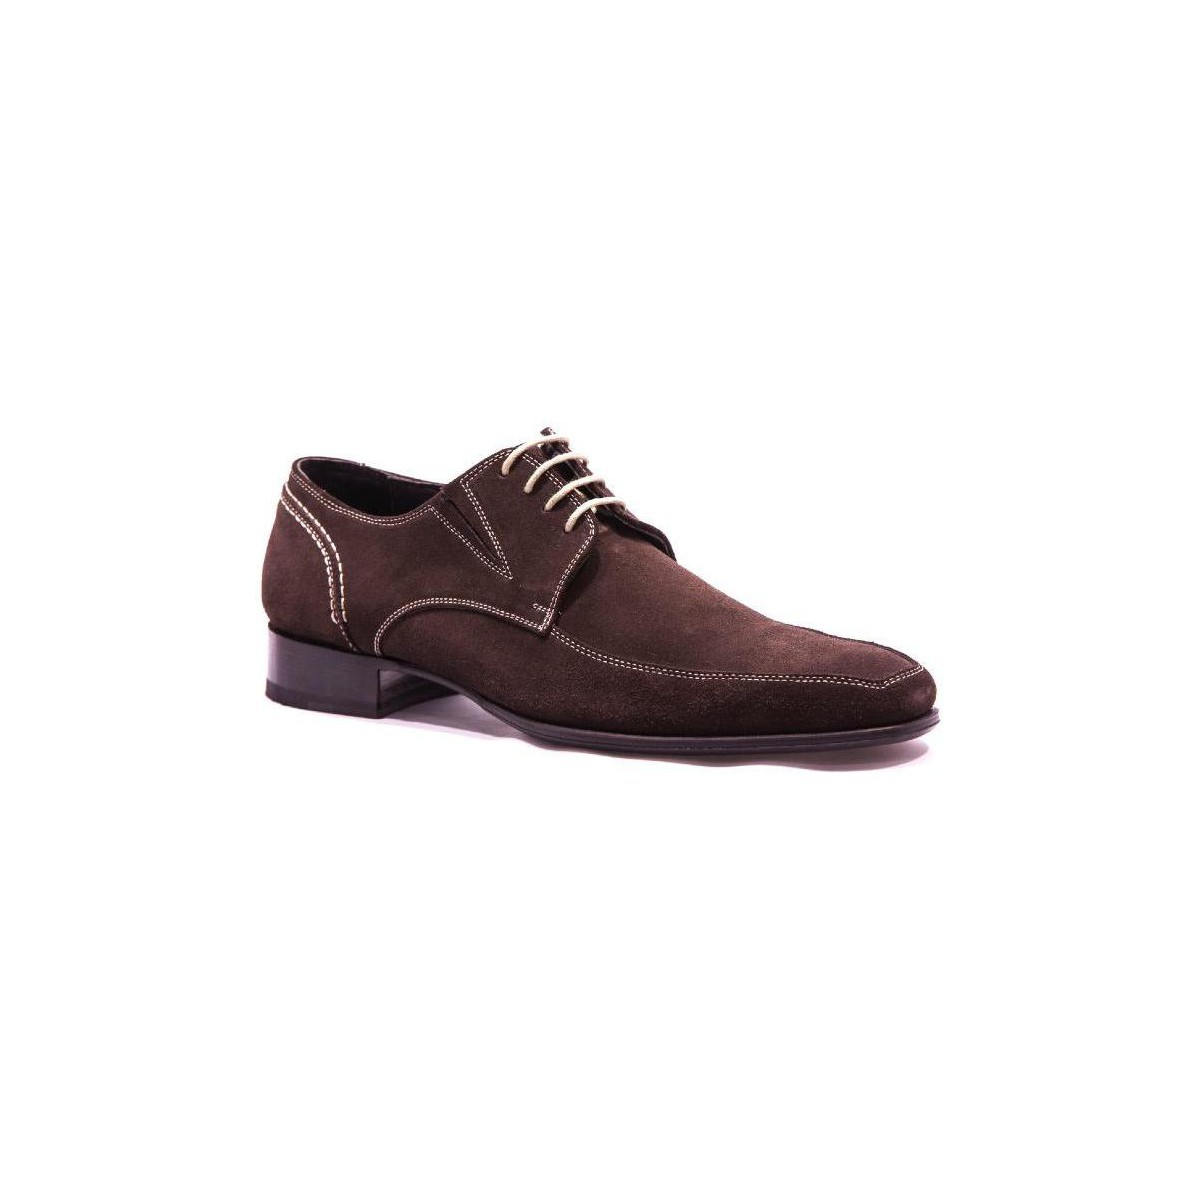 Baxton Derbies 10119 Marron marron